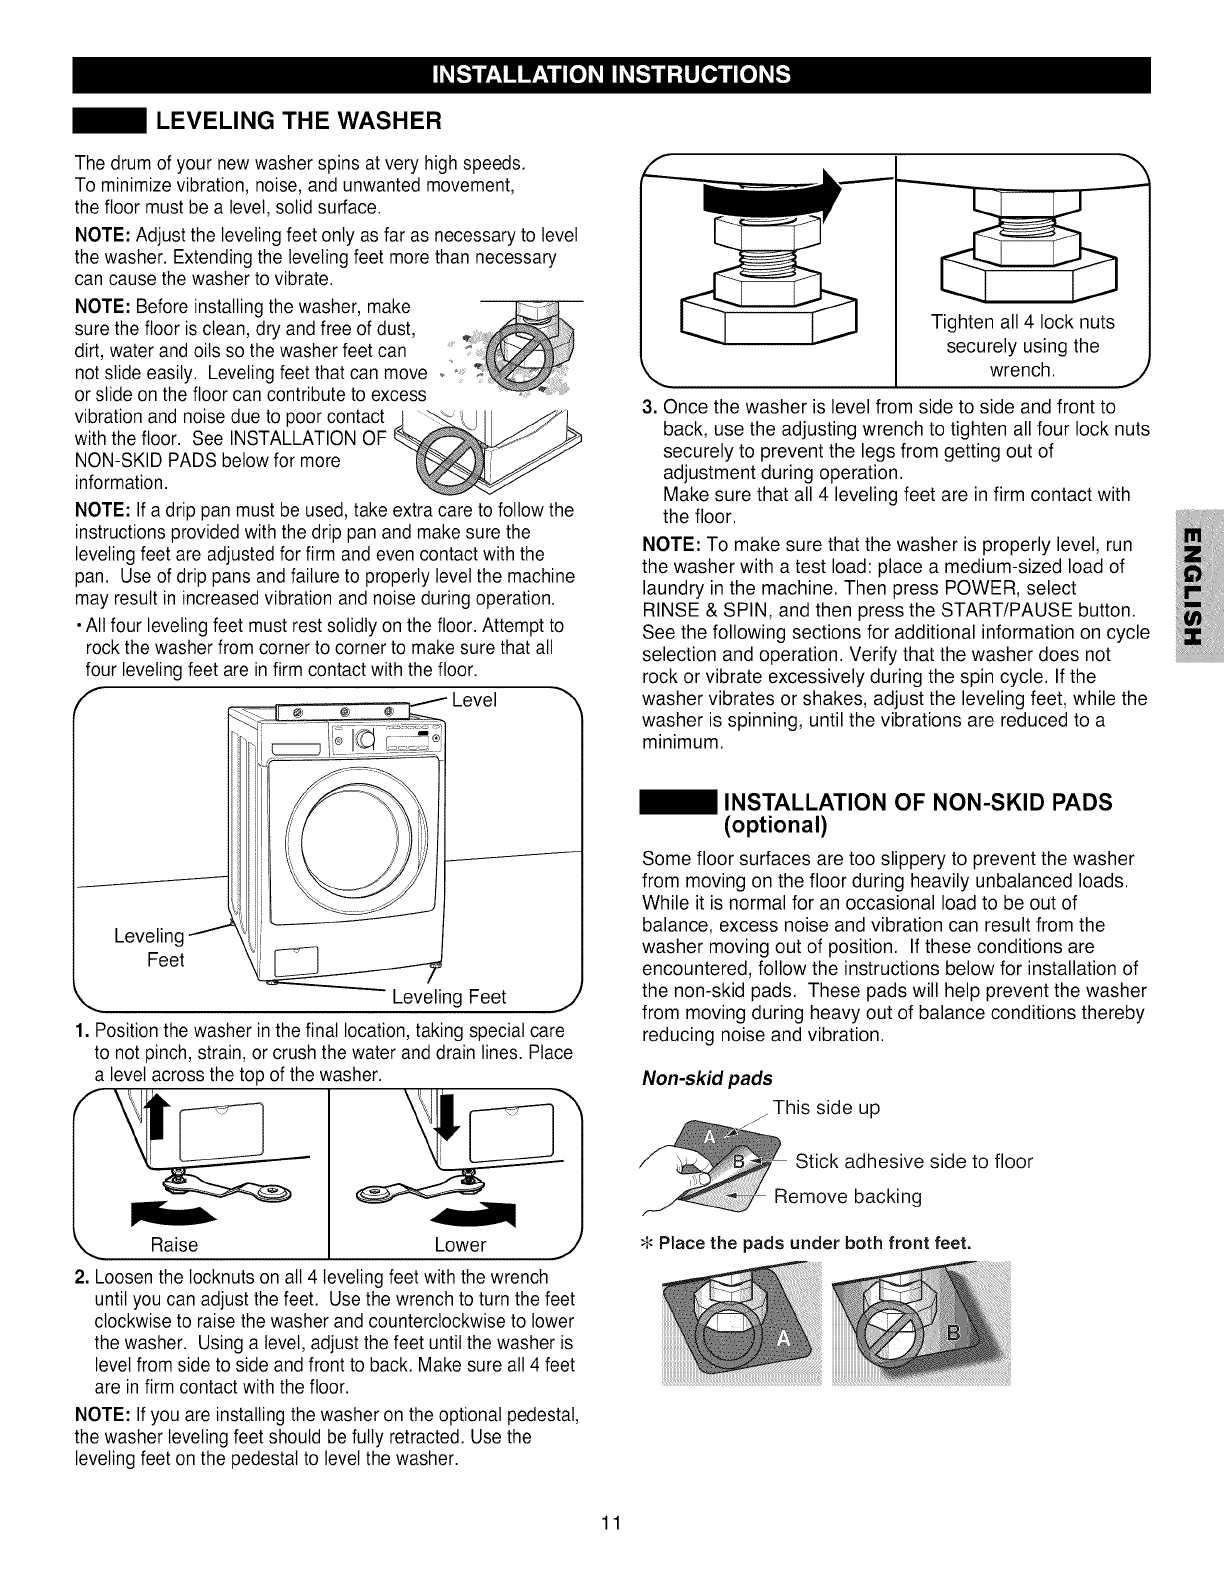 Kenmore Elite 79642192900 User Manual WASHER Manuals And